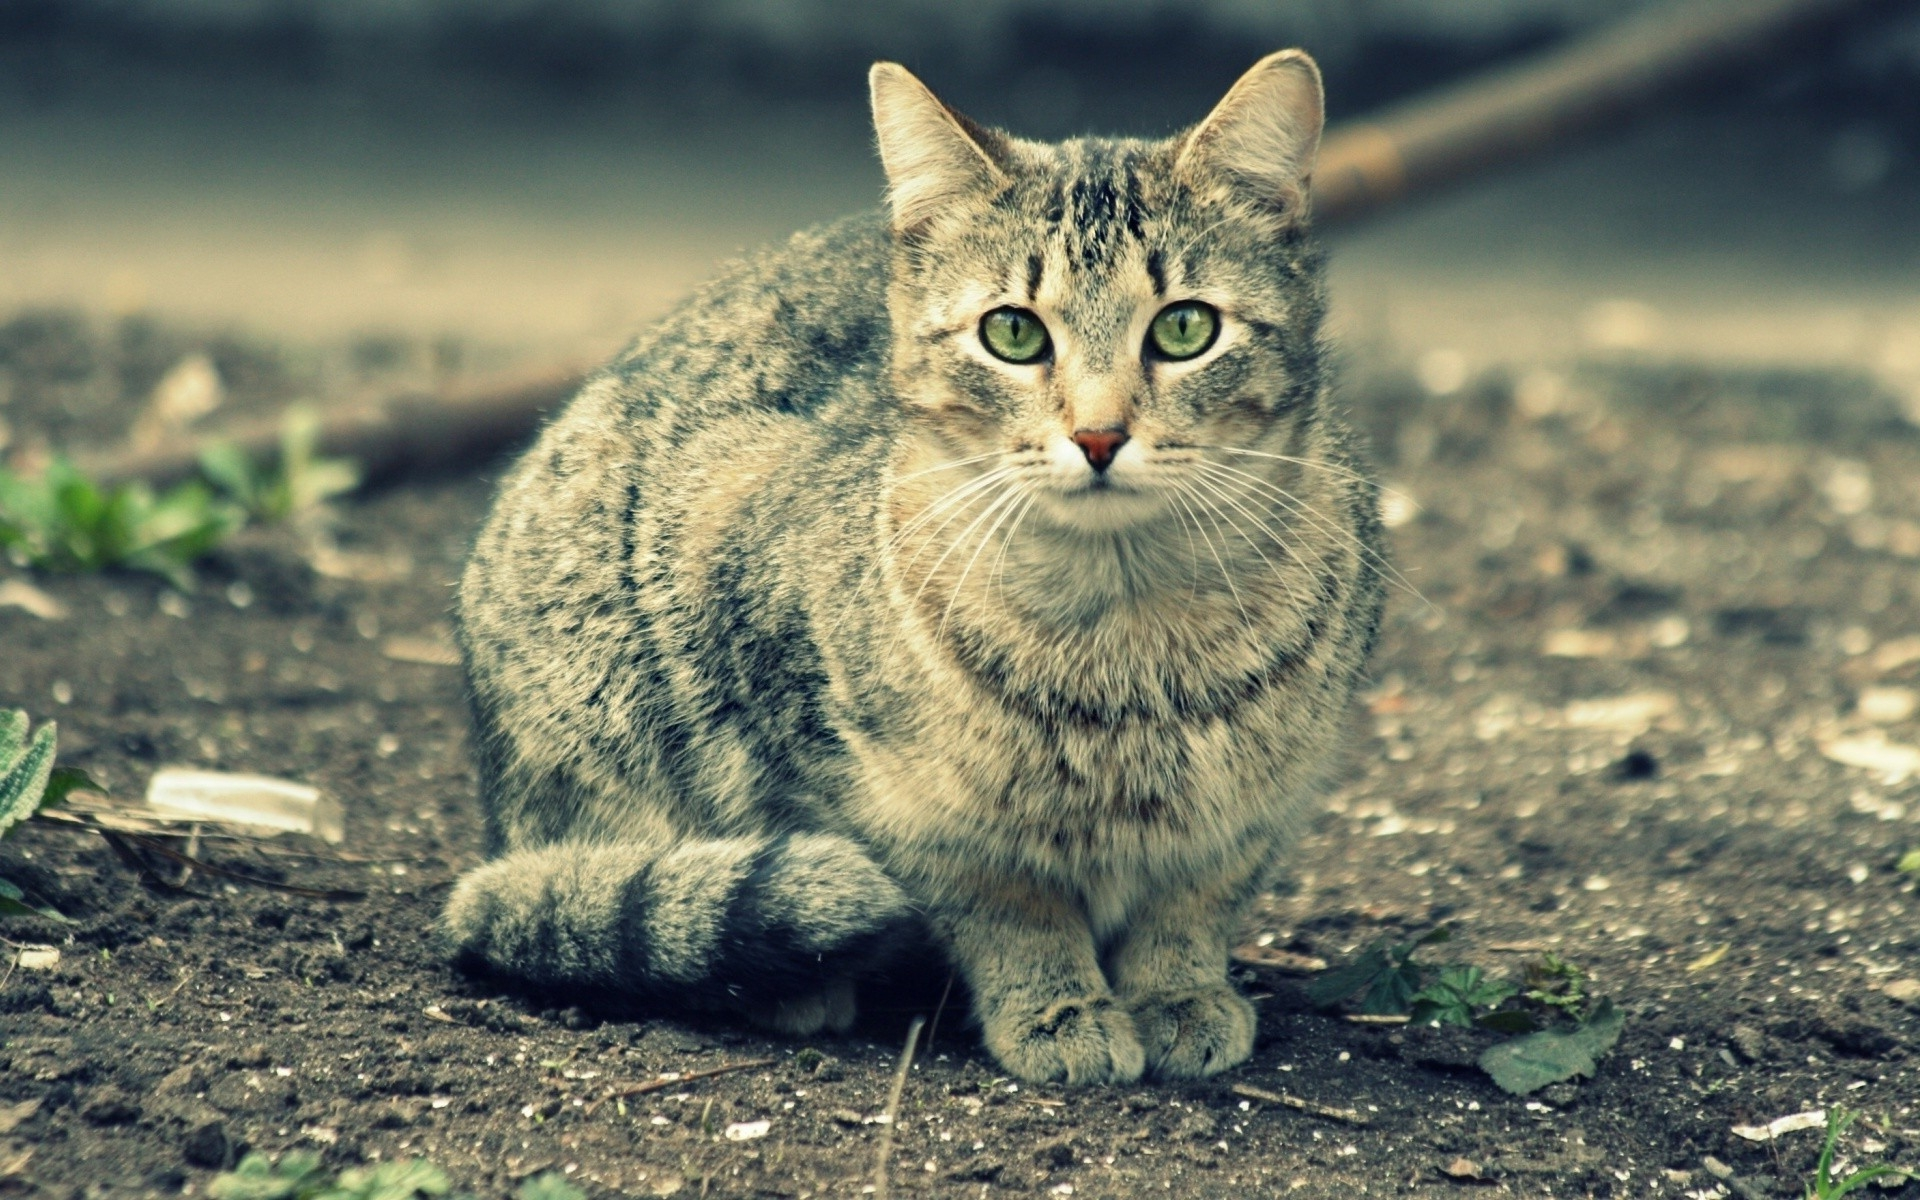 49415 download wallpaper Animals, Cats screensavers and pictures for free